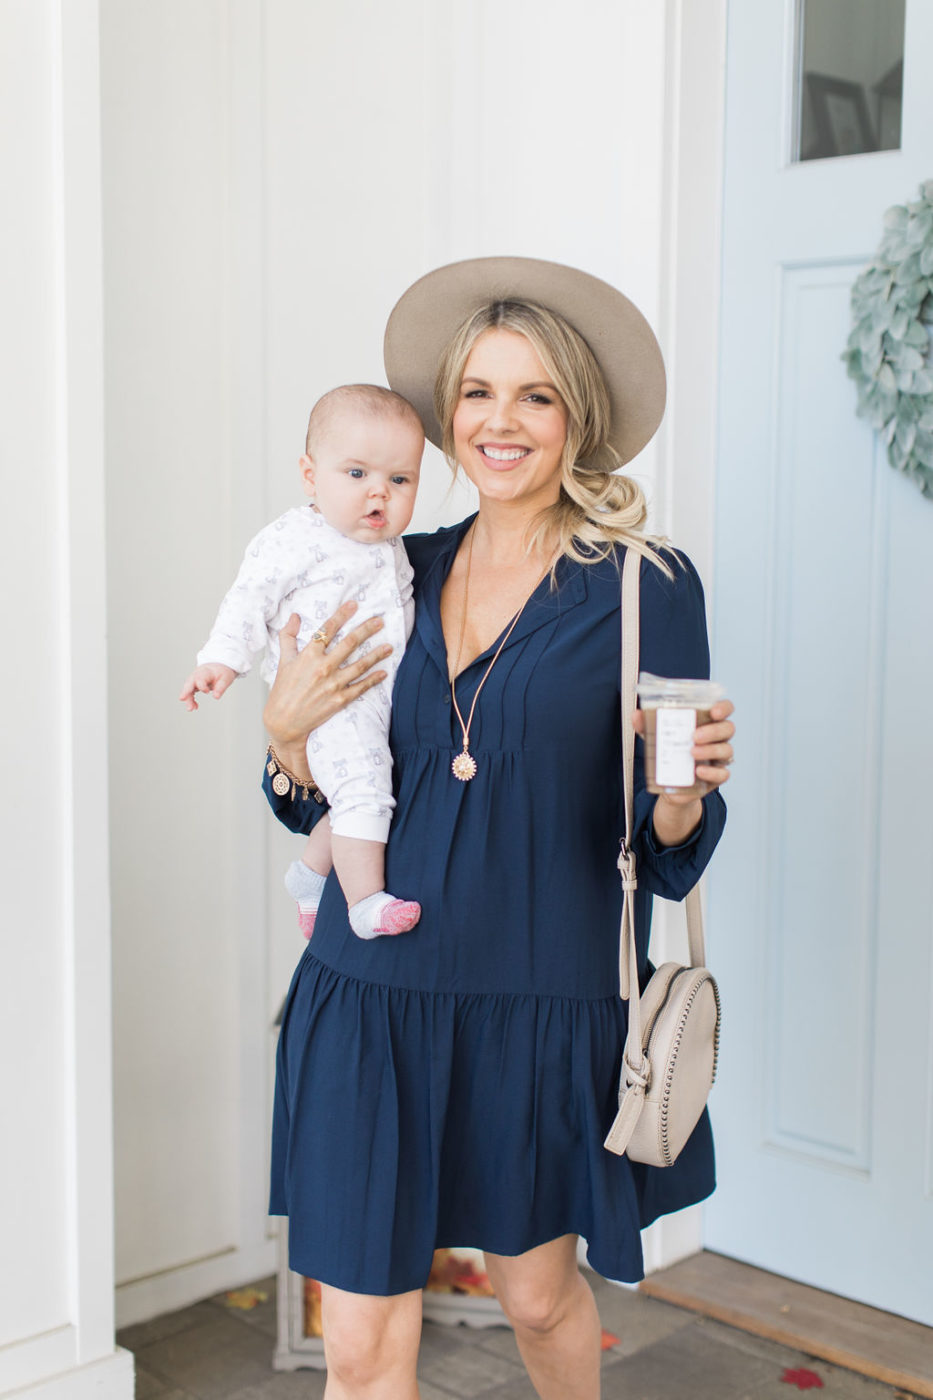 My 3 Fave Post-Baby Looks Right Now